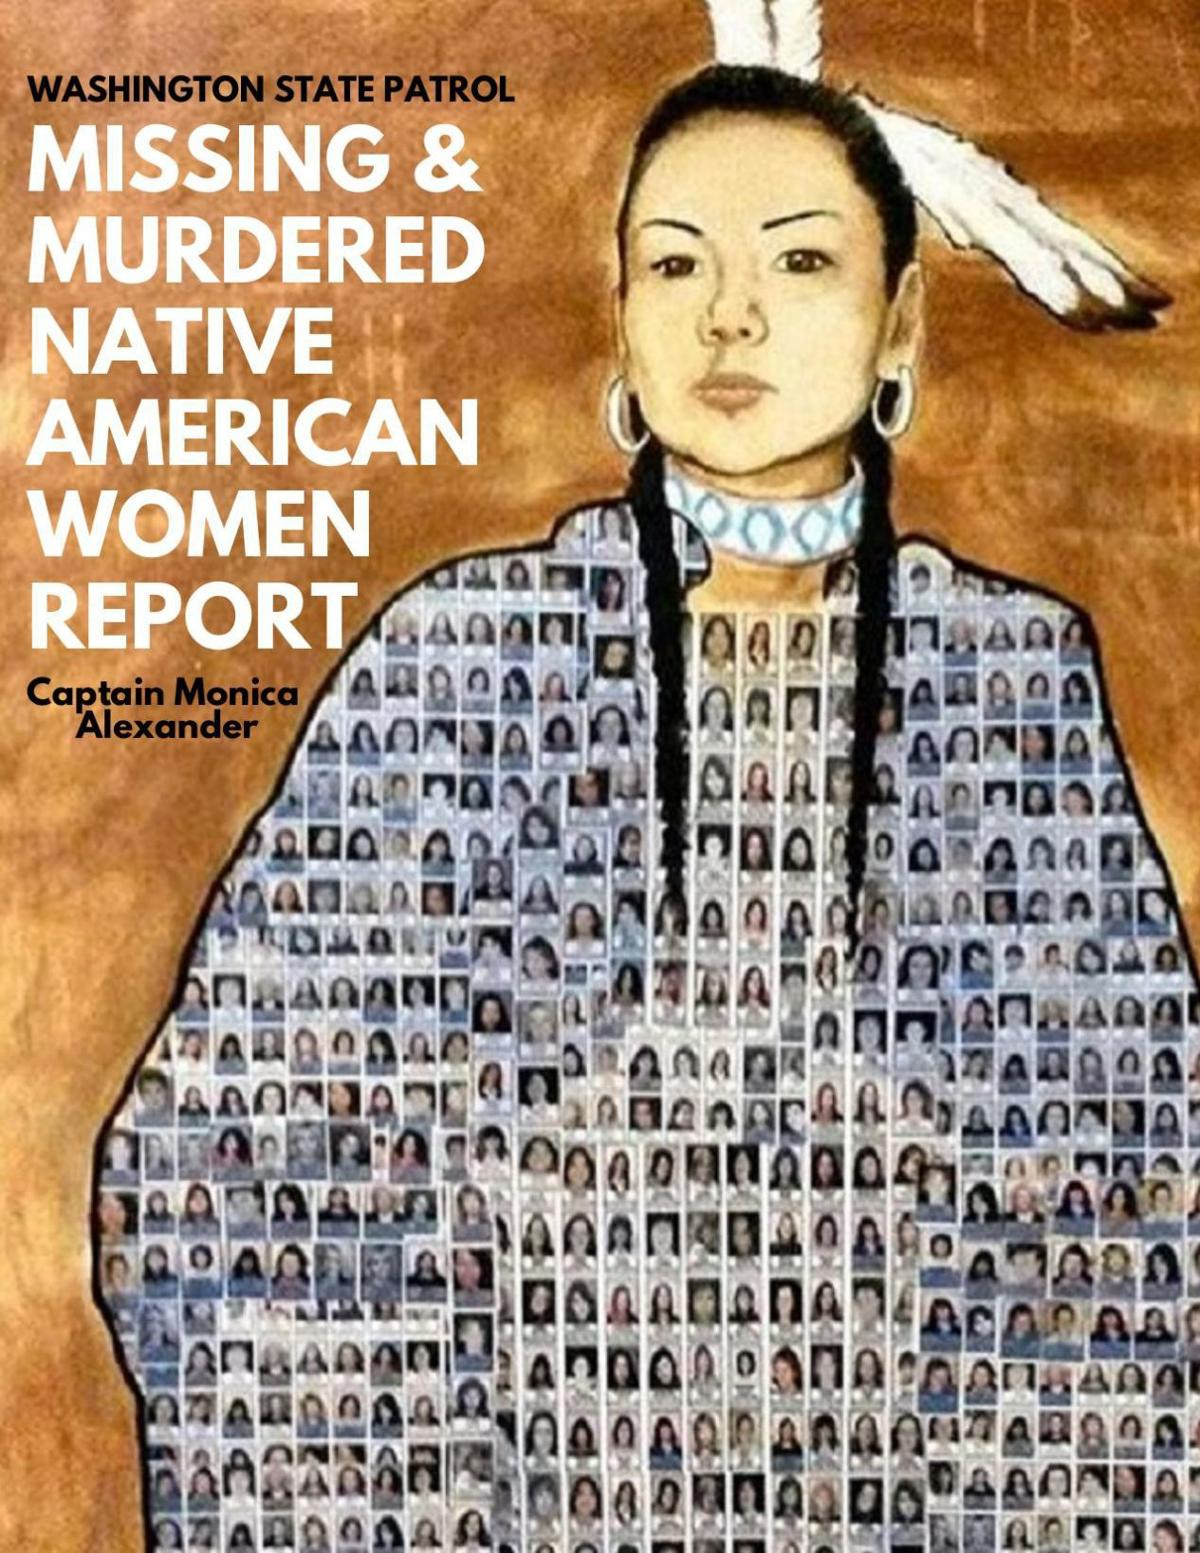 WSP: Missing & murdered Native American women report